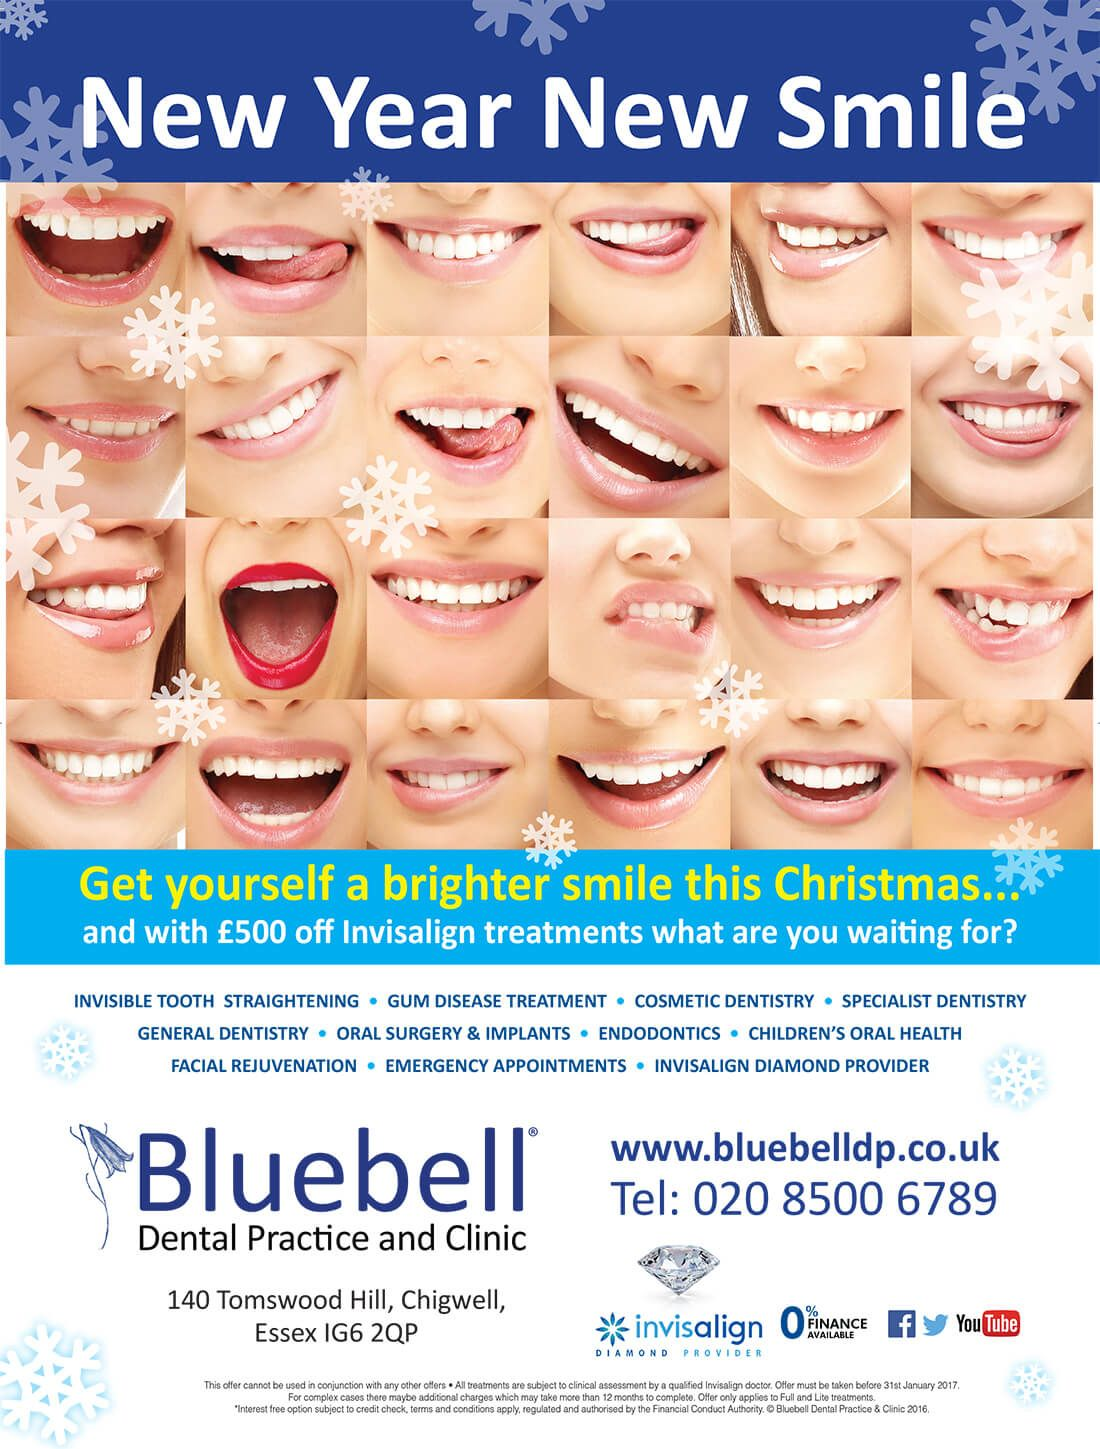 Get yourself brighter smile this christmas with 500 off on all get yourself brighter smile this christmas with 500 off on all invisalign treatments bluebell dental practice offers invisalign tooth straighteni solutioingenieria Image collections